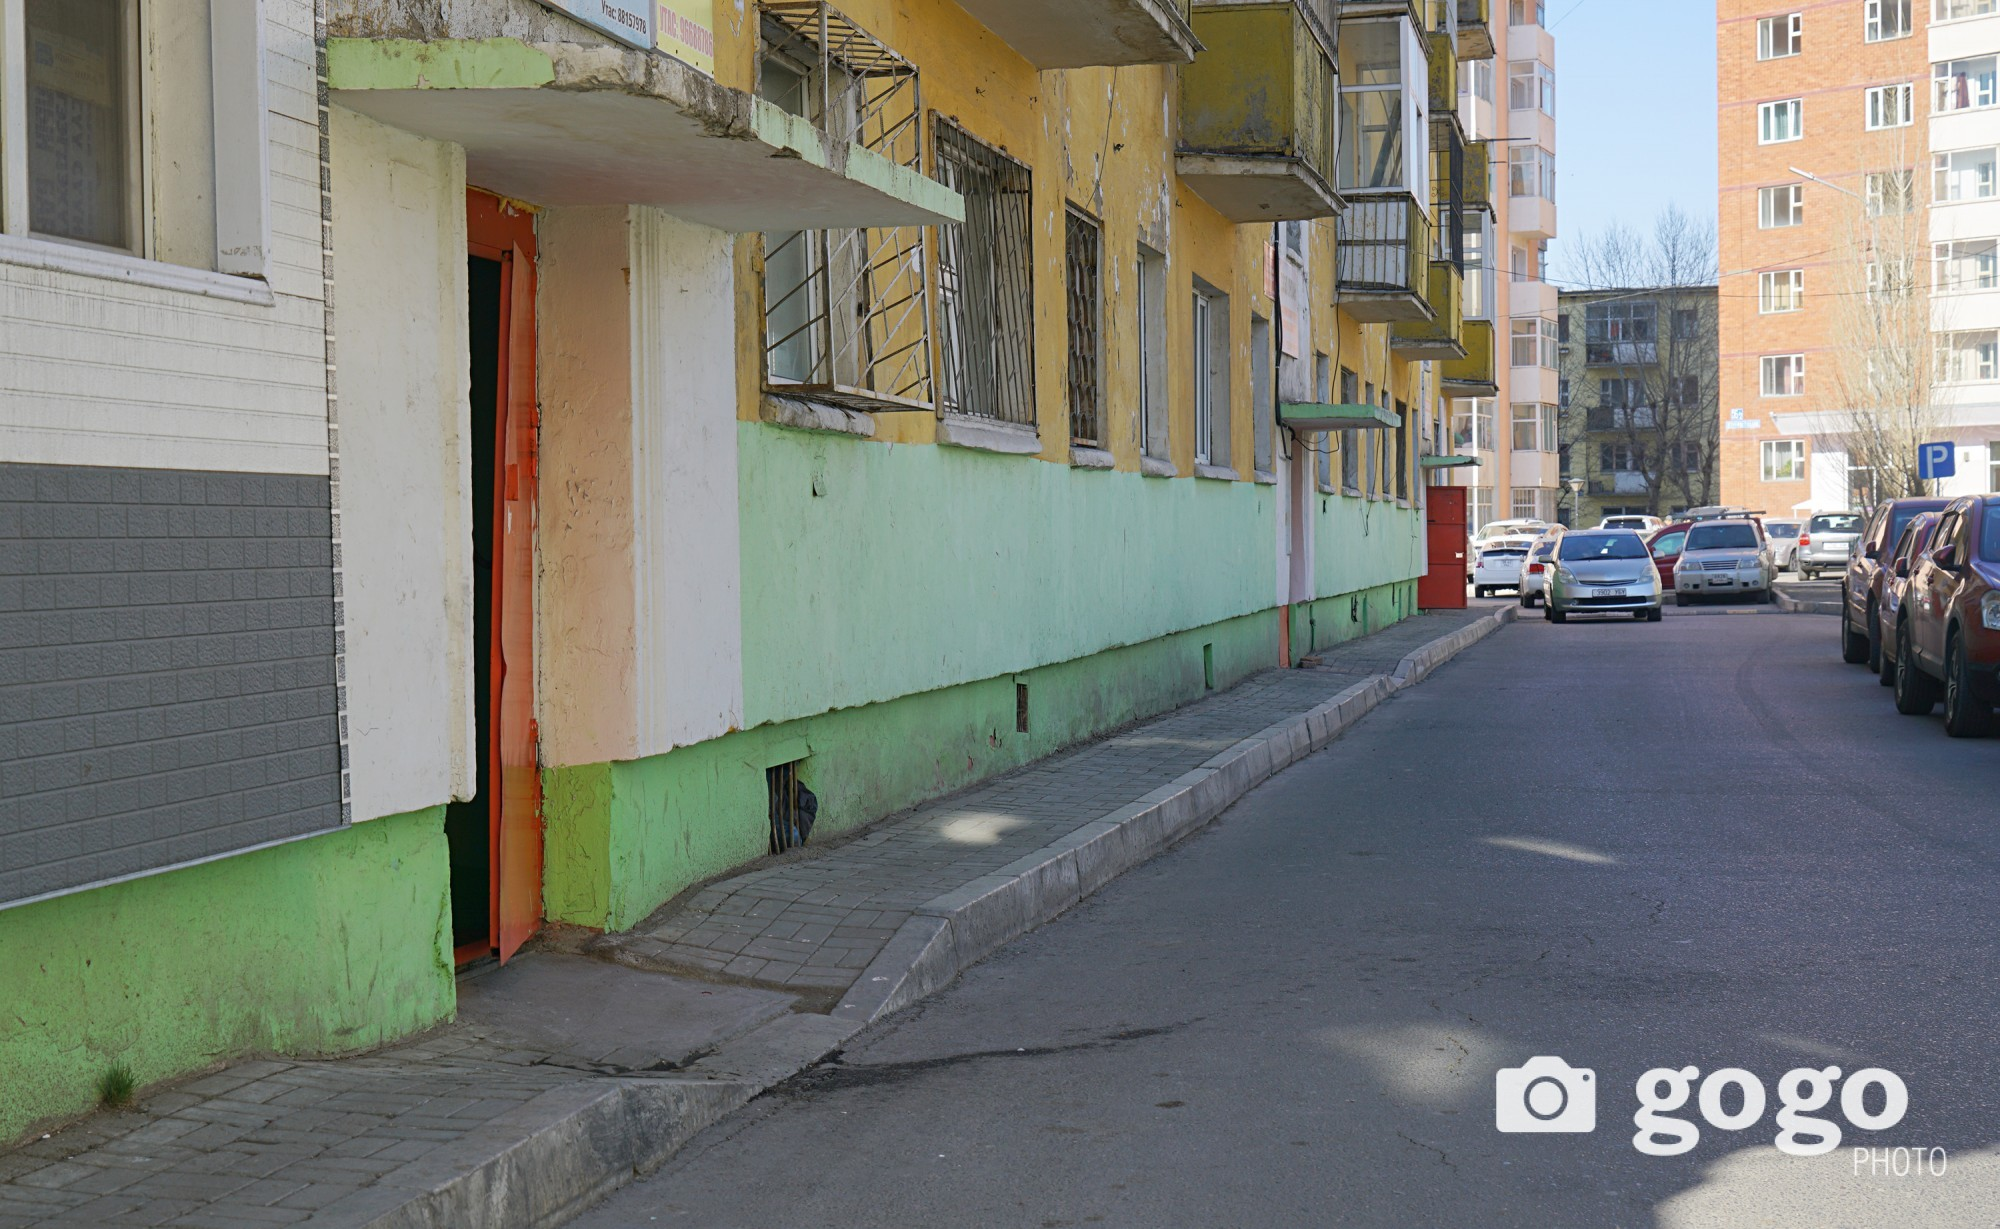 Apartment located west of 24th secondary school. Too cramped Ulaanbaatar... /2017.04.22/